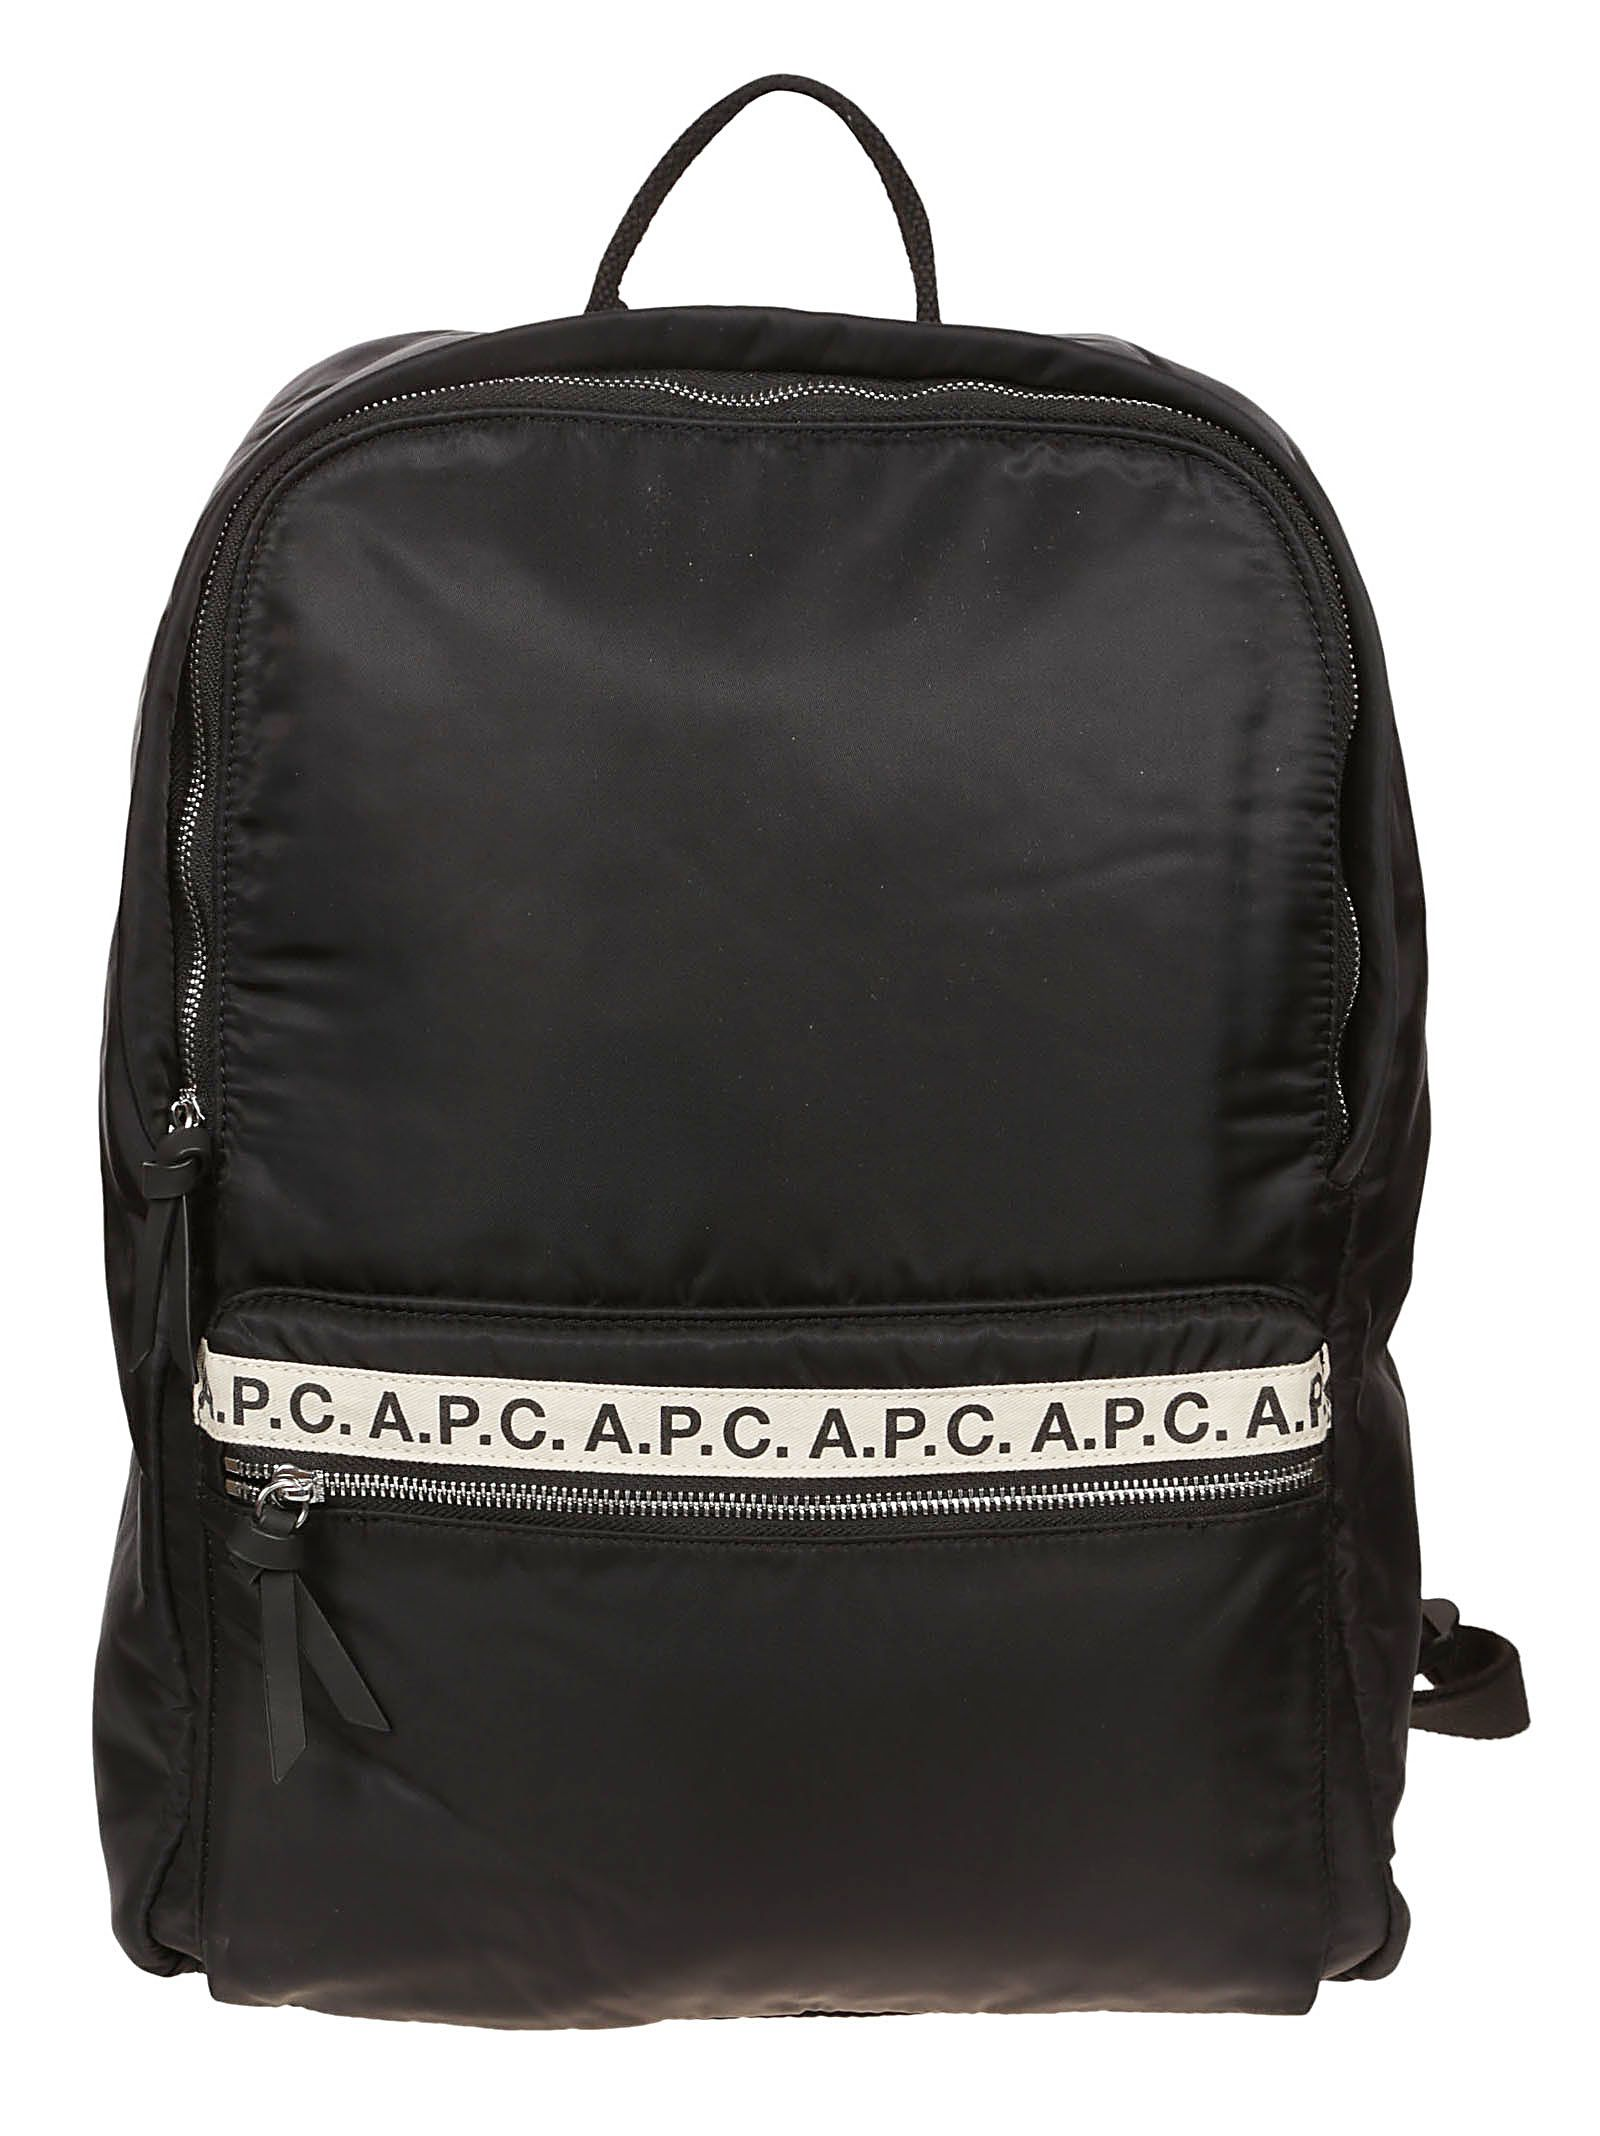 A.P.C. Sally Backpack In Noir   ModeSens c1acb2ee8d60